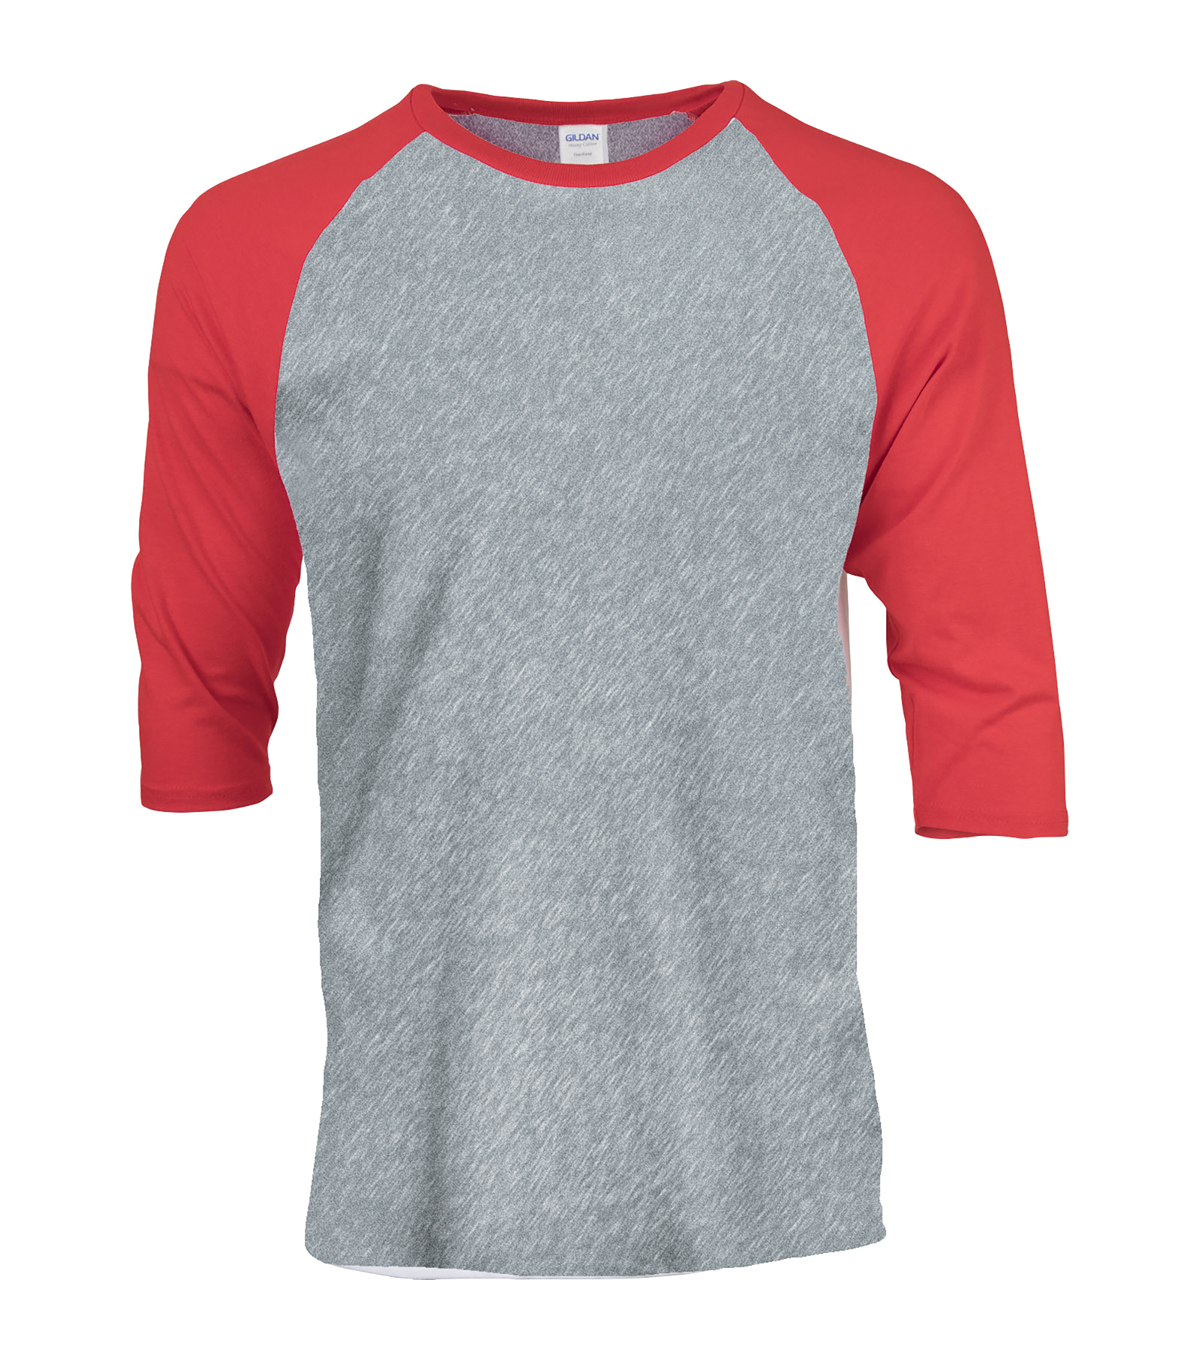 Gildan Large Adult Raglan Crew Sport T-Shirt, Grey-red